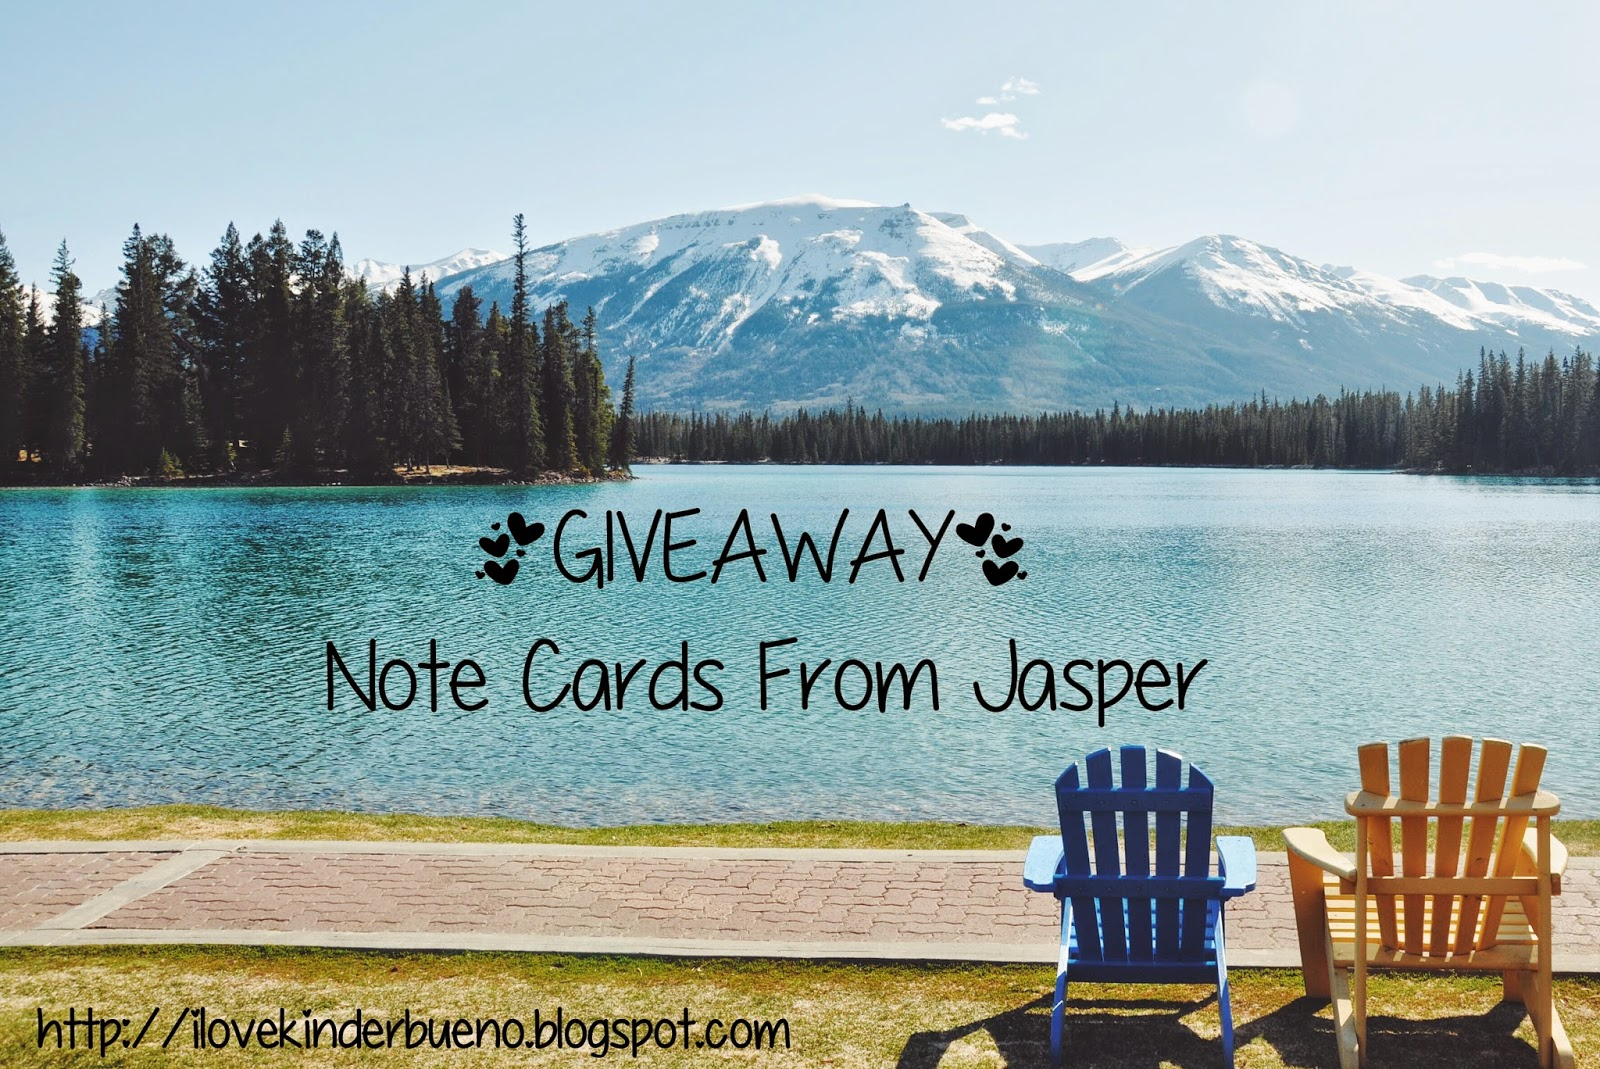 http://ilovekinderbueno.blogspot.ca/2014/07/giveaway-note-cards-from-jasper.html